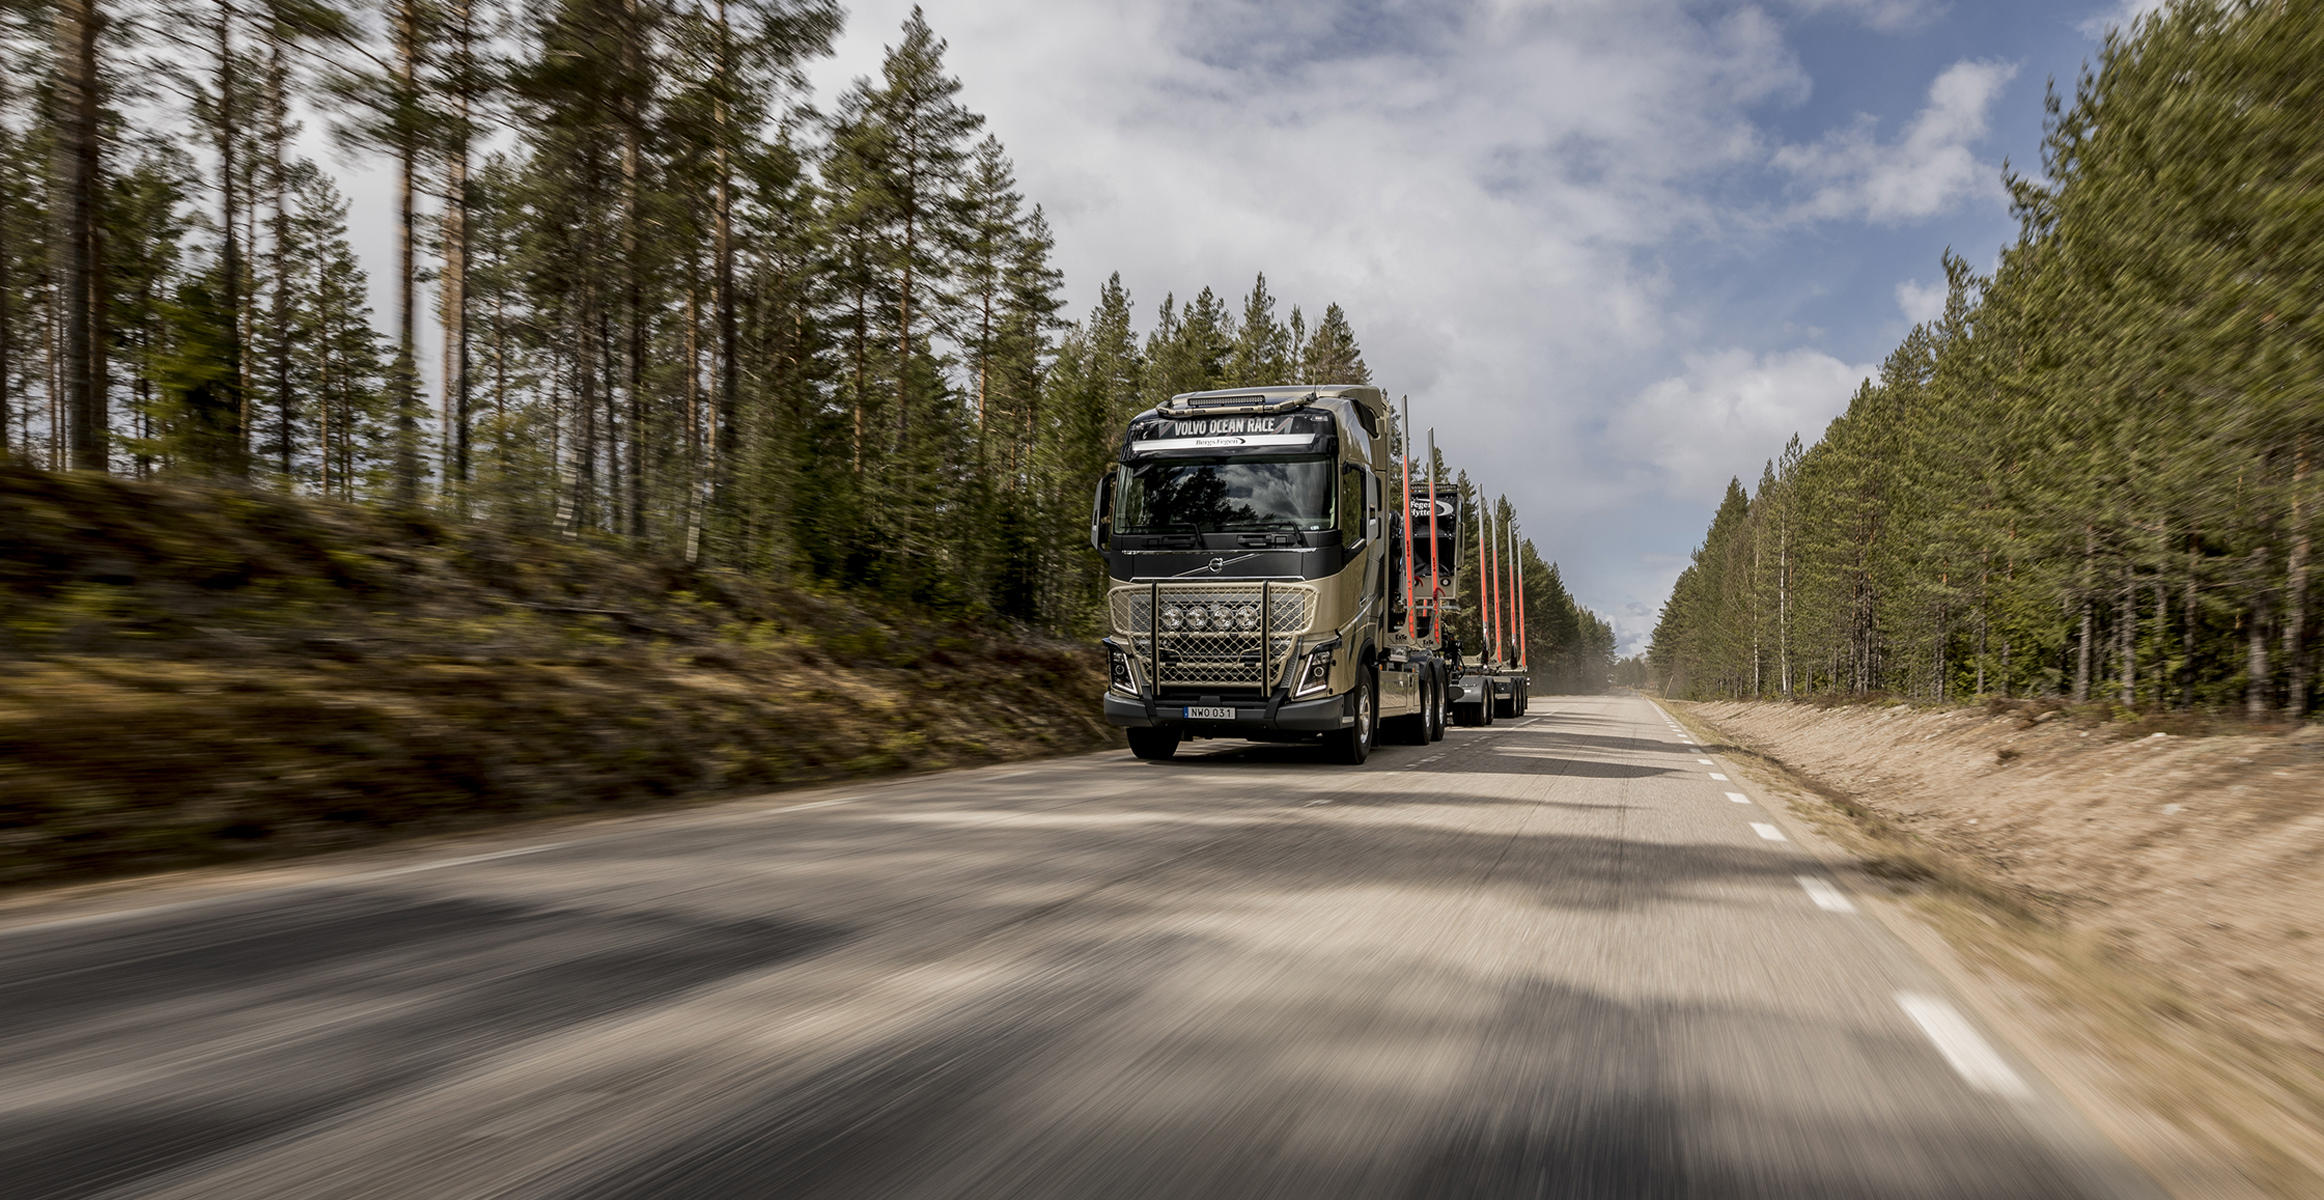 Volvo Trucks' FH16 truck (Volvo Ocean Race Edition), courtesy of Emil Gustafson, Extendo AB